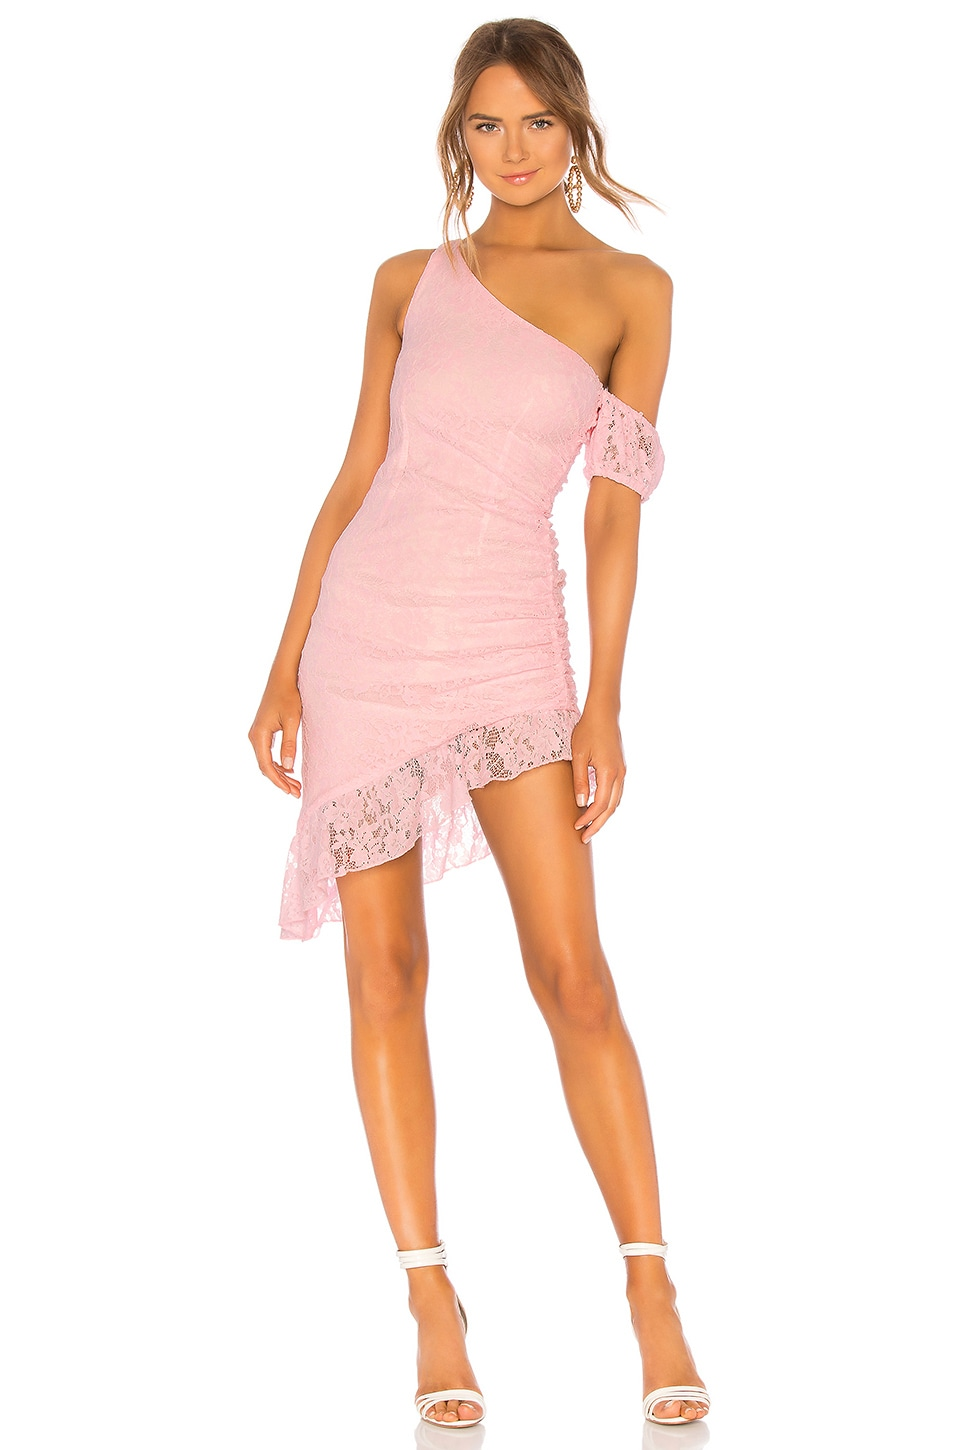 MAJORELLE Mary Ann Mini Dress in Baby Pink